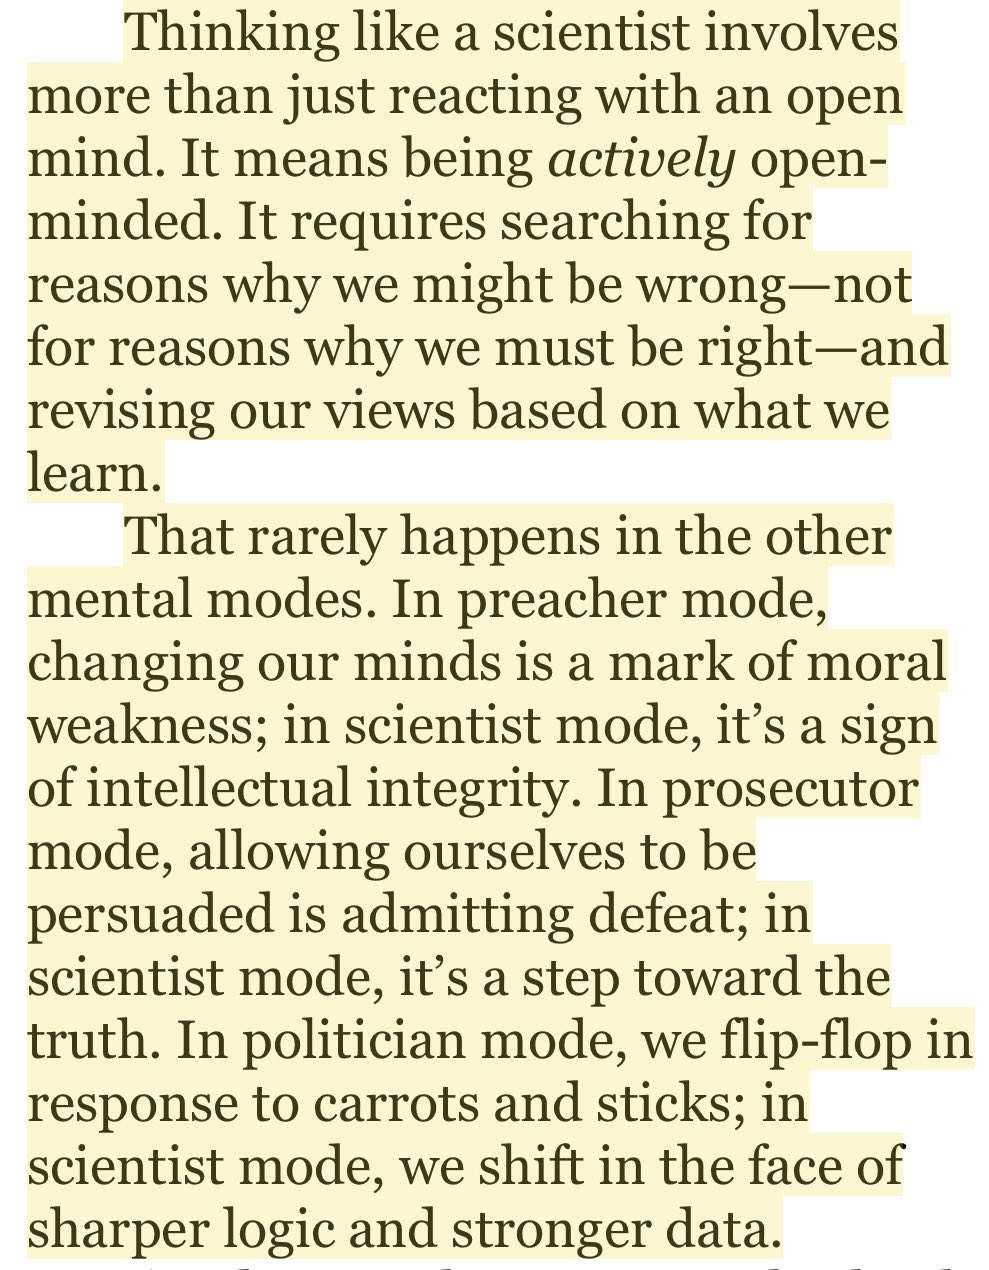 """""""Thinking like a scientist involves more than just reacting with an open mind. It means being actively openminded."""""""